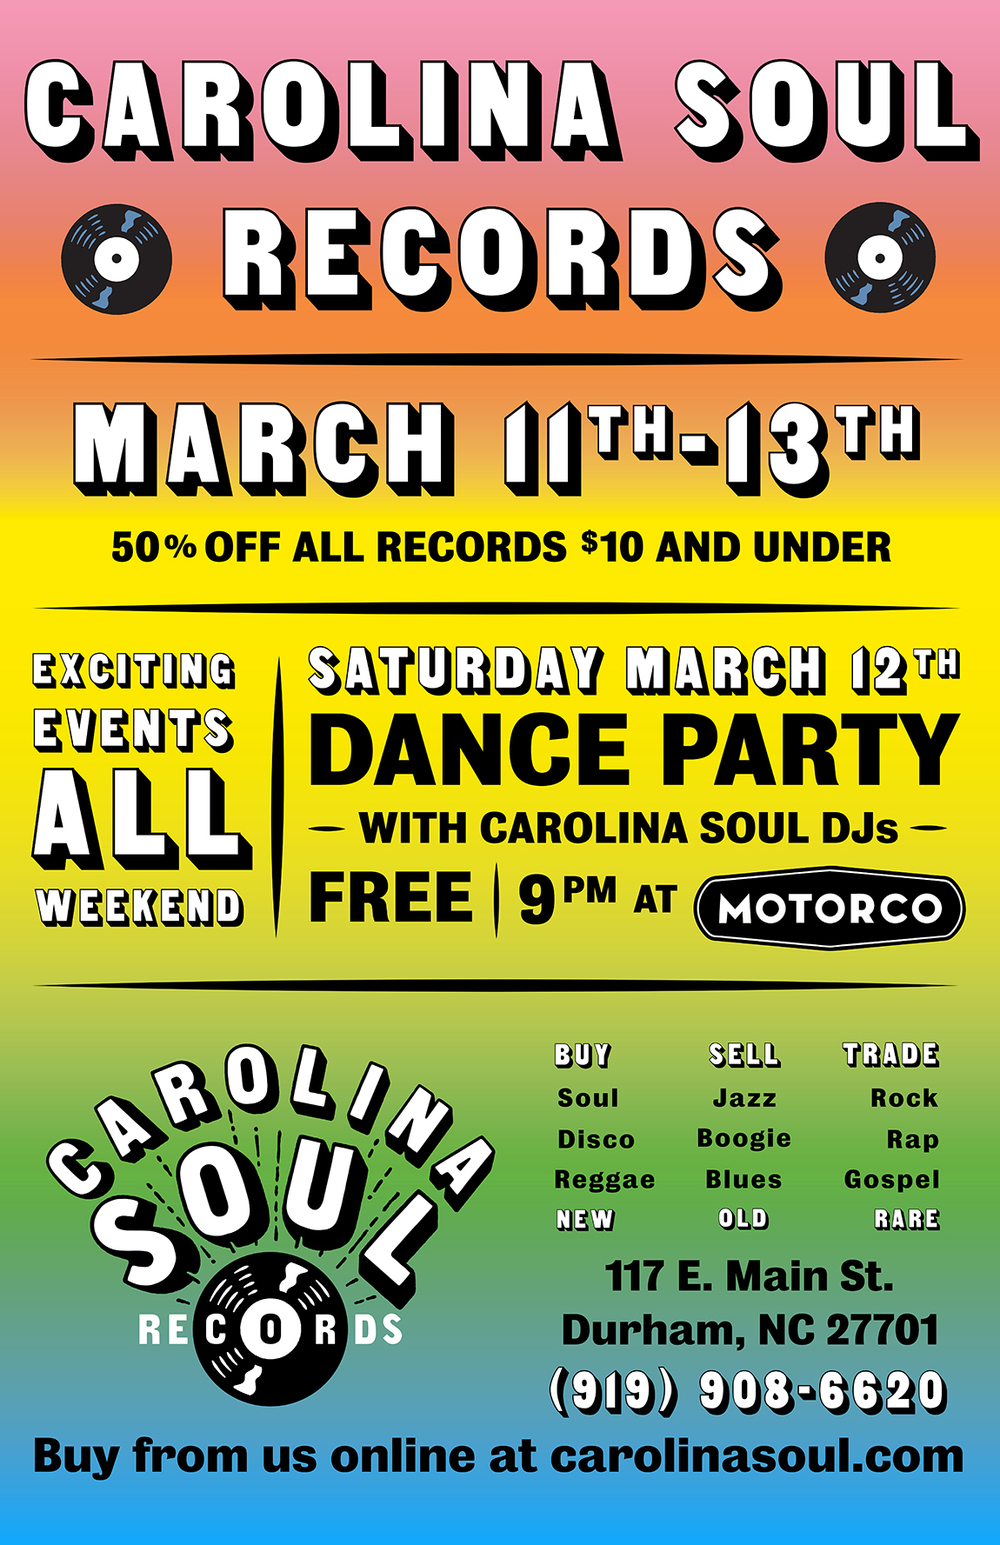 Carolina Soul Flyer Facebook 11x17 Final March 2016.jpg